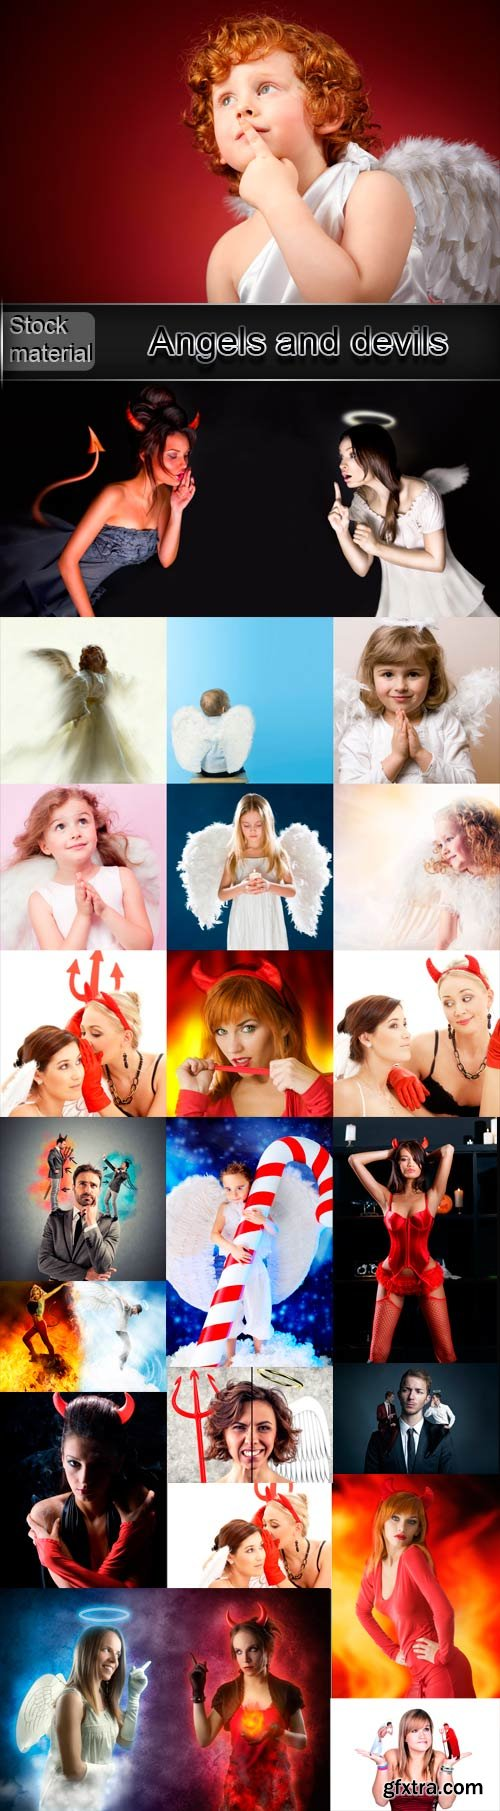 Angels and devils raster graphics